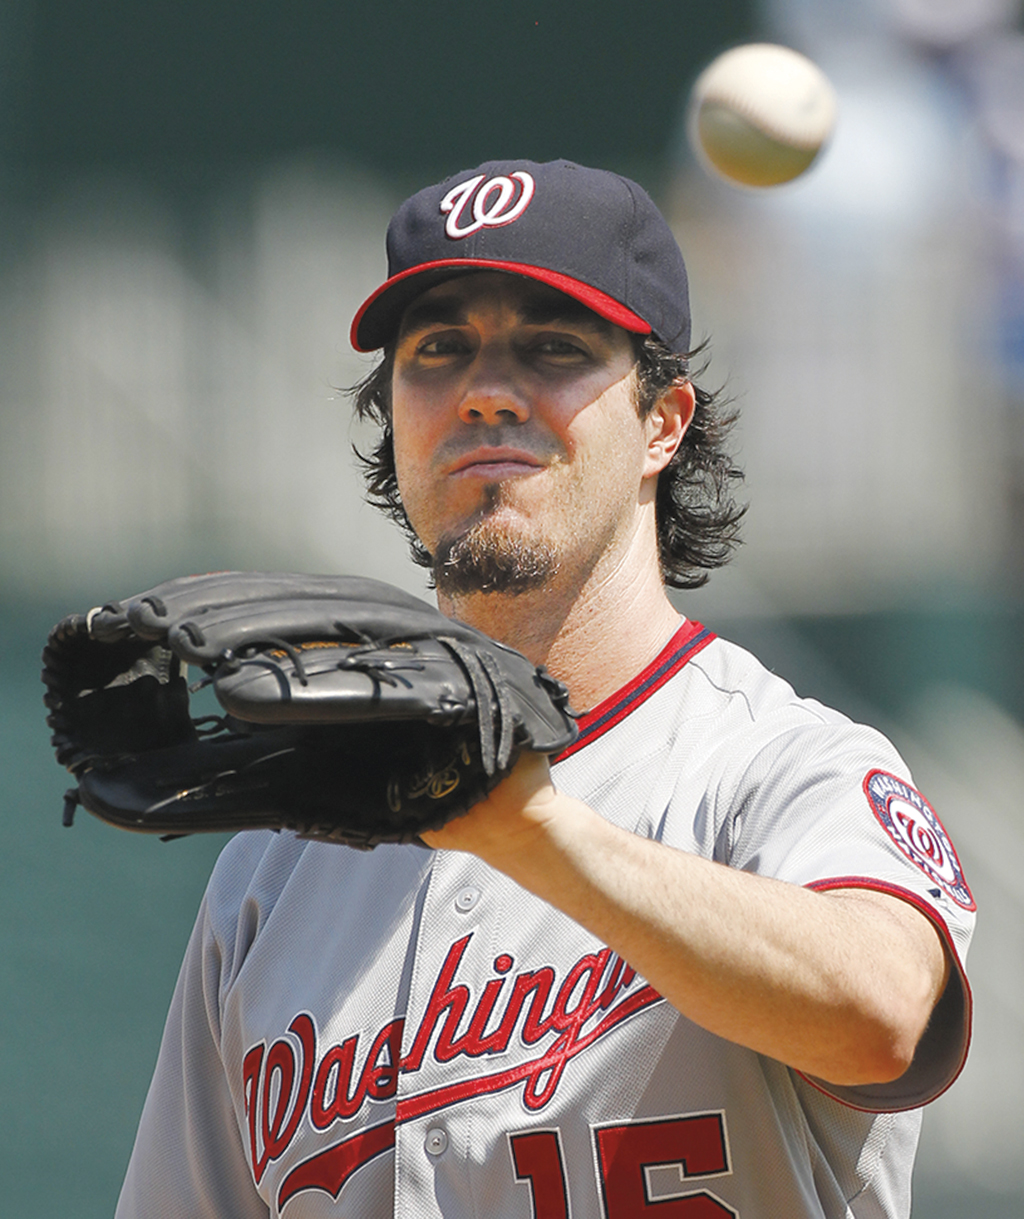 washington nationals baseball Worst-Nationals_Dan-Haren